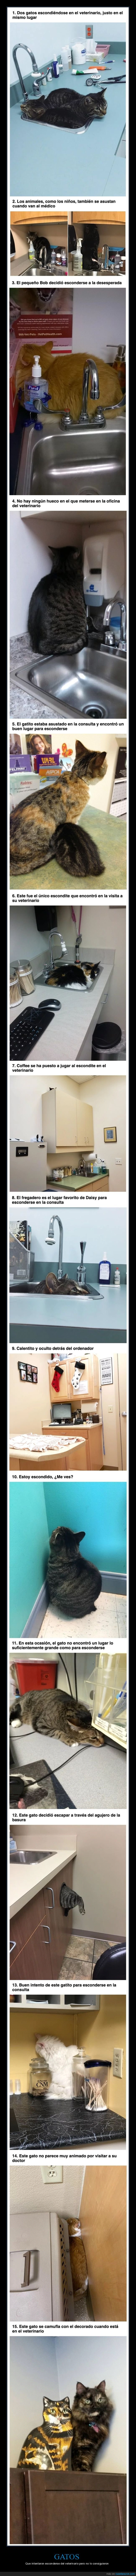 escondiéndose,gatos,veterinario